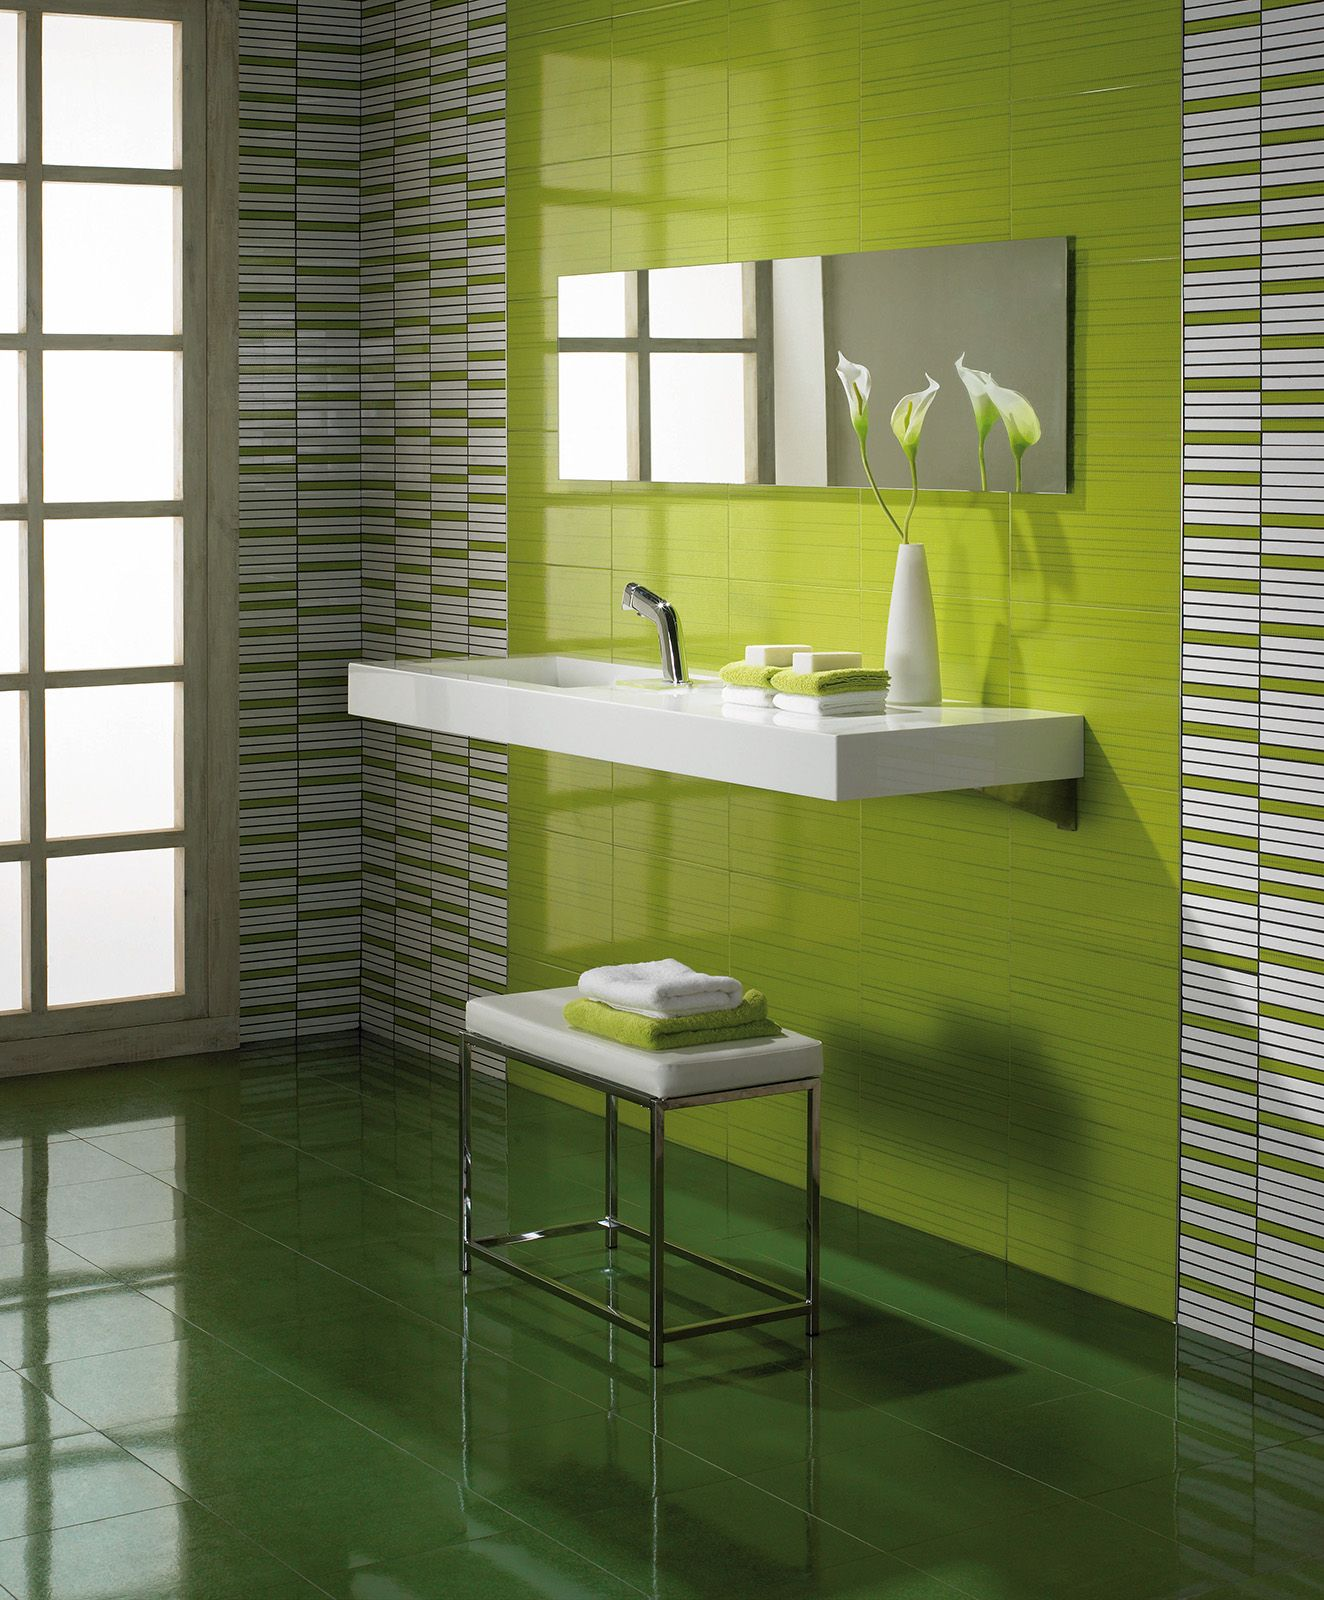 Charming Bright And Light Lime Green Wall Tiles Perfect For A Bathroom, Floating  Sink. Stainless